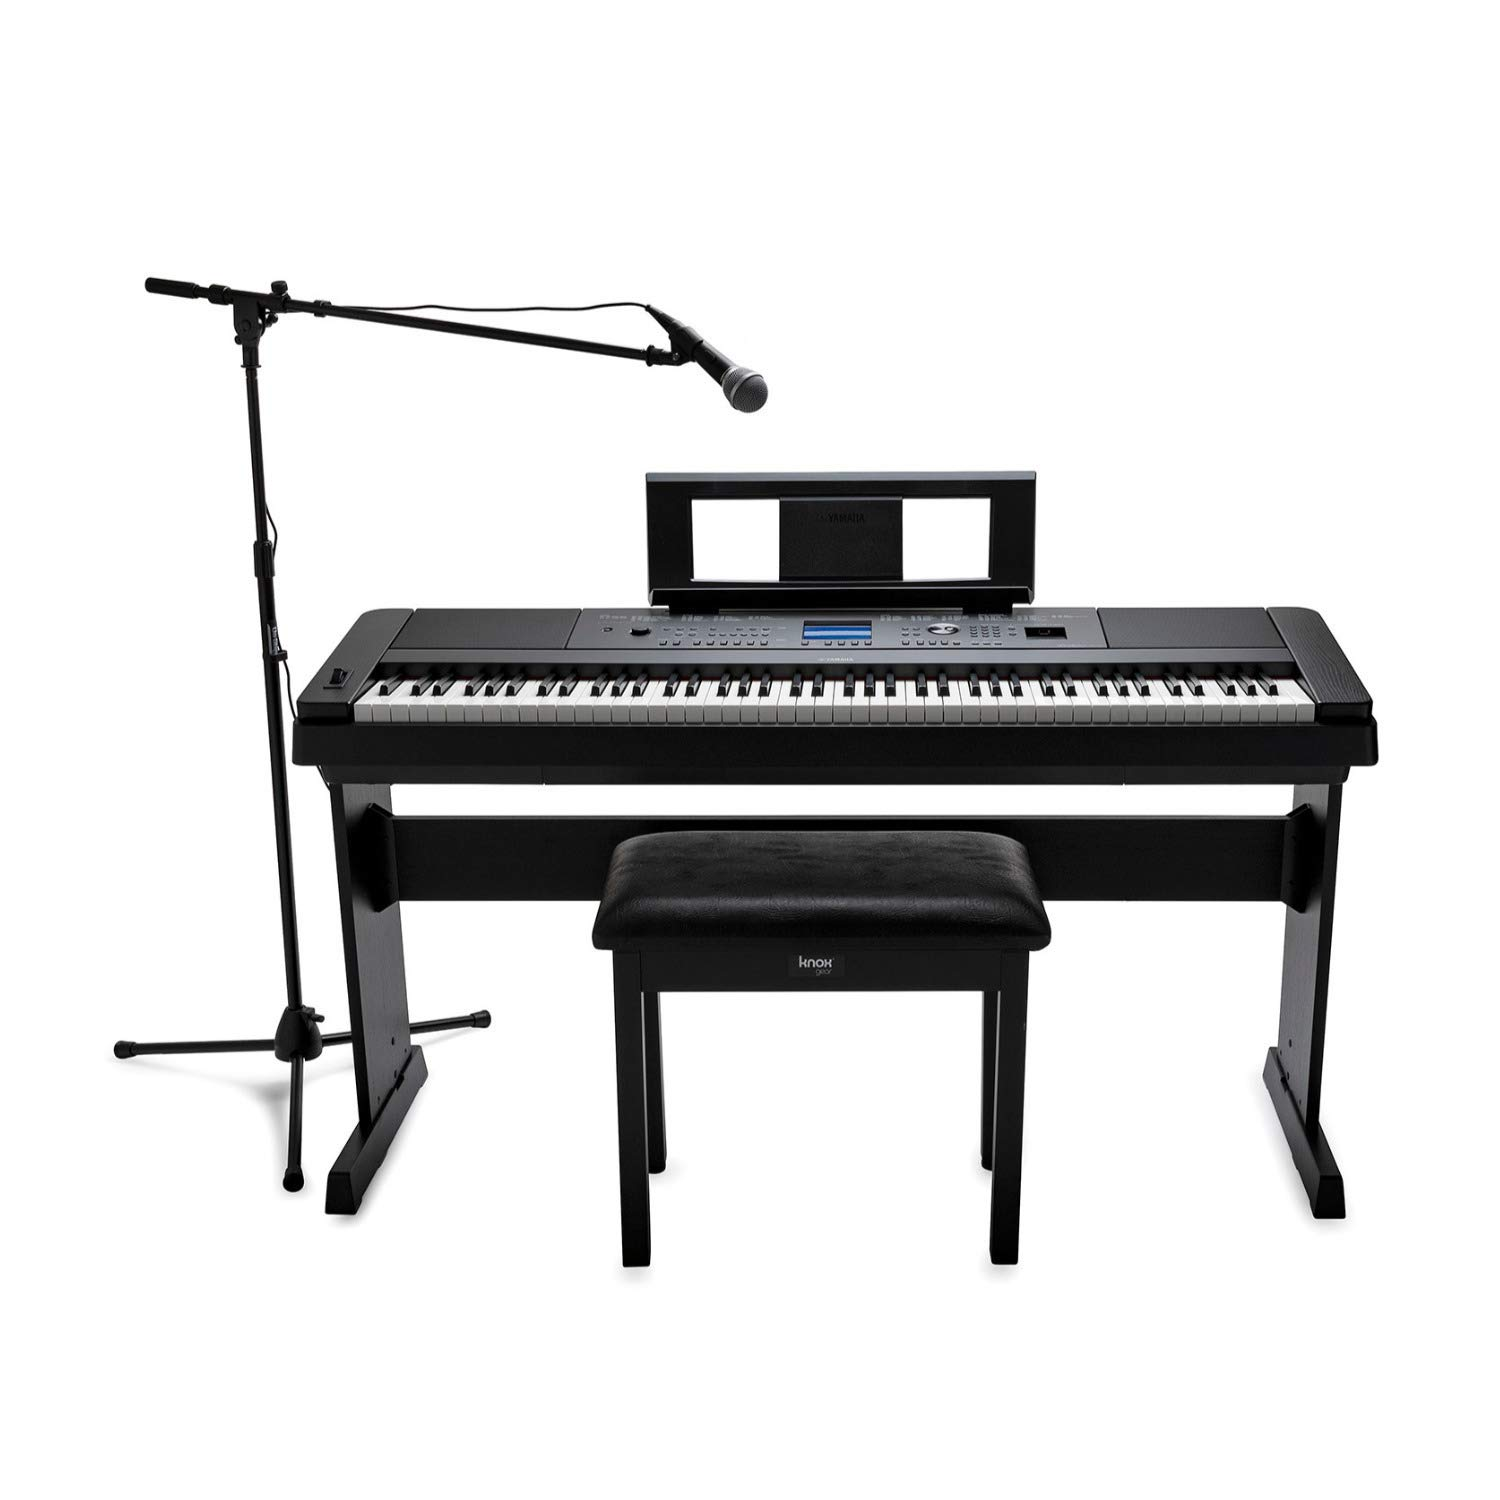 Yamaha DGX-660 88-Key Digital Grand Piano with ATR1200 Microphone, Mic Stand, Knox Flip Top Bench and Focus Piano Book Bundle by YAMAHA